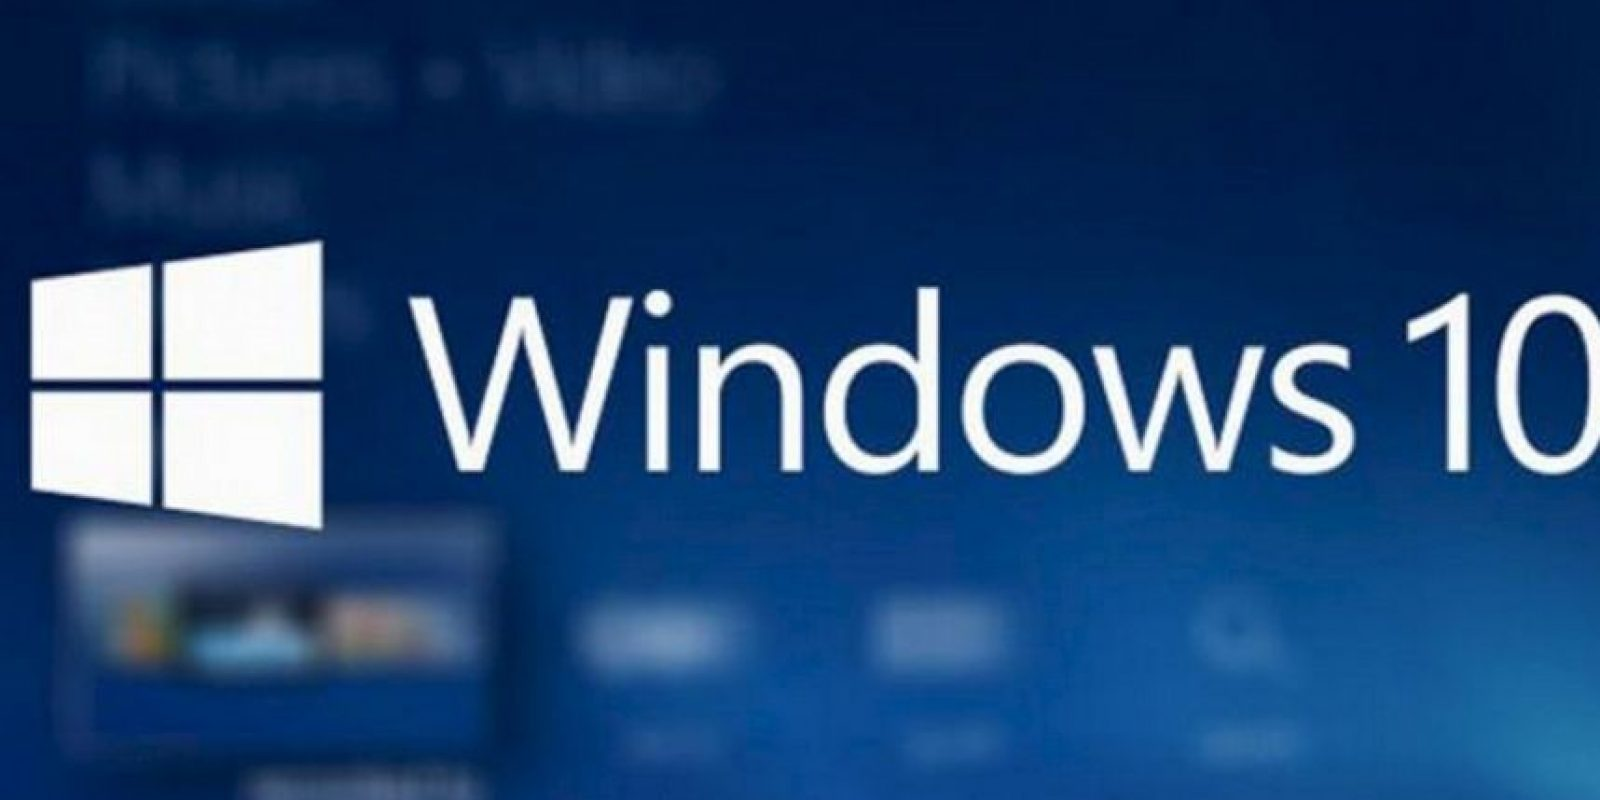 A mediados de este año, Windows lanzará al mercado Windows 10, con lo que nuevamente busca estar a la vanguardia en tecnología para PC y notebooks. Foto: windows.microsoft.com